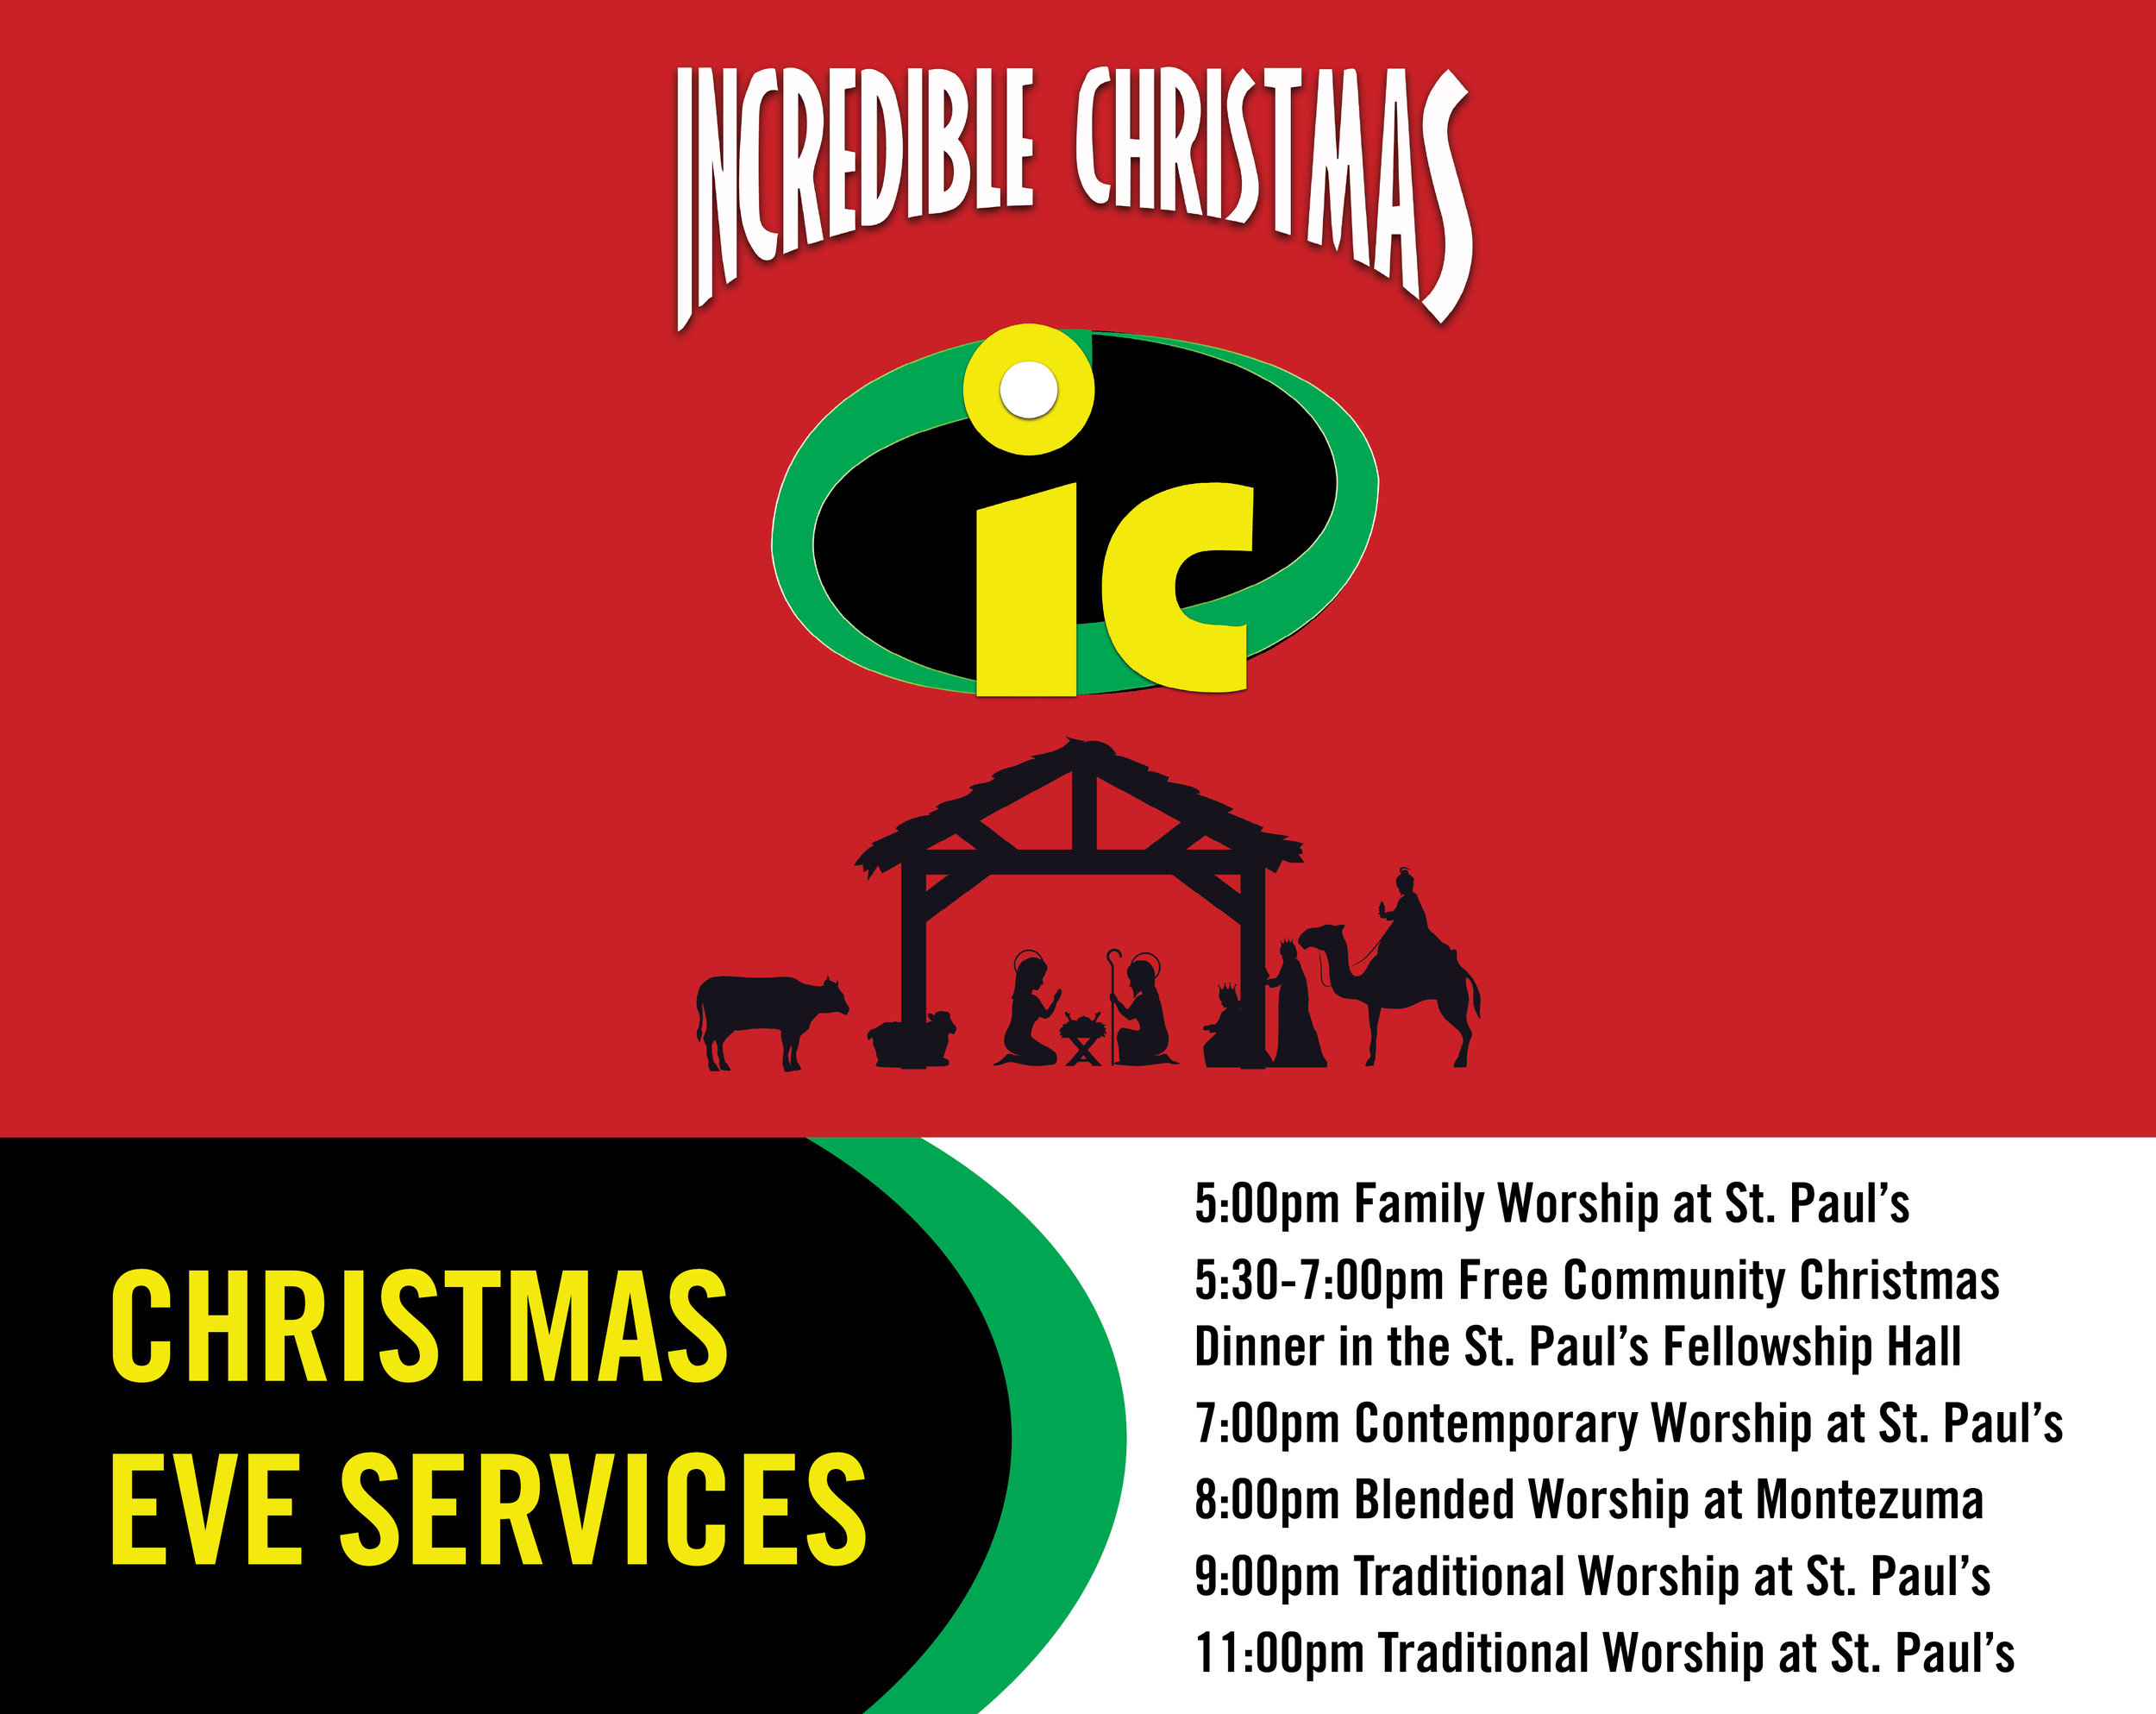 Incredibles Slide with Christmas Eve Schedule.jpg